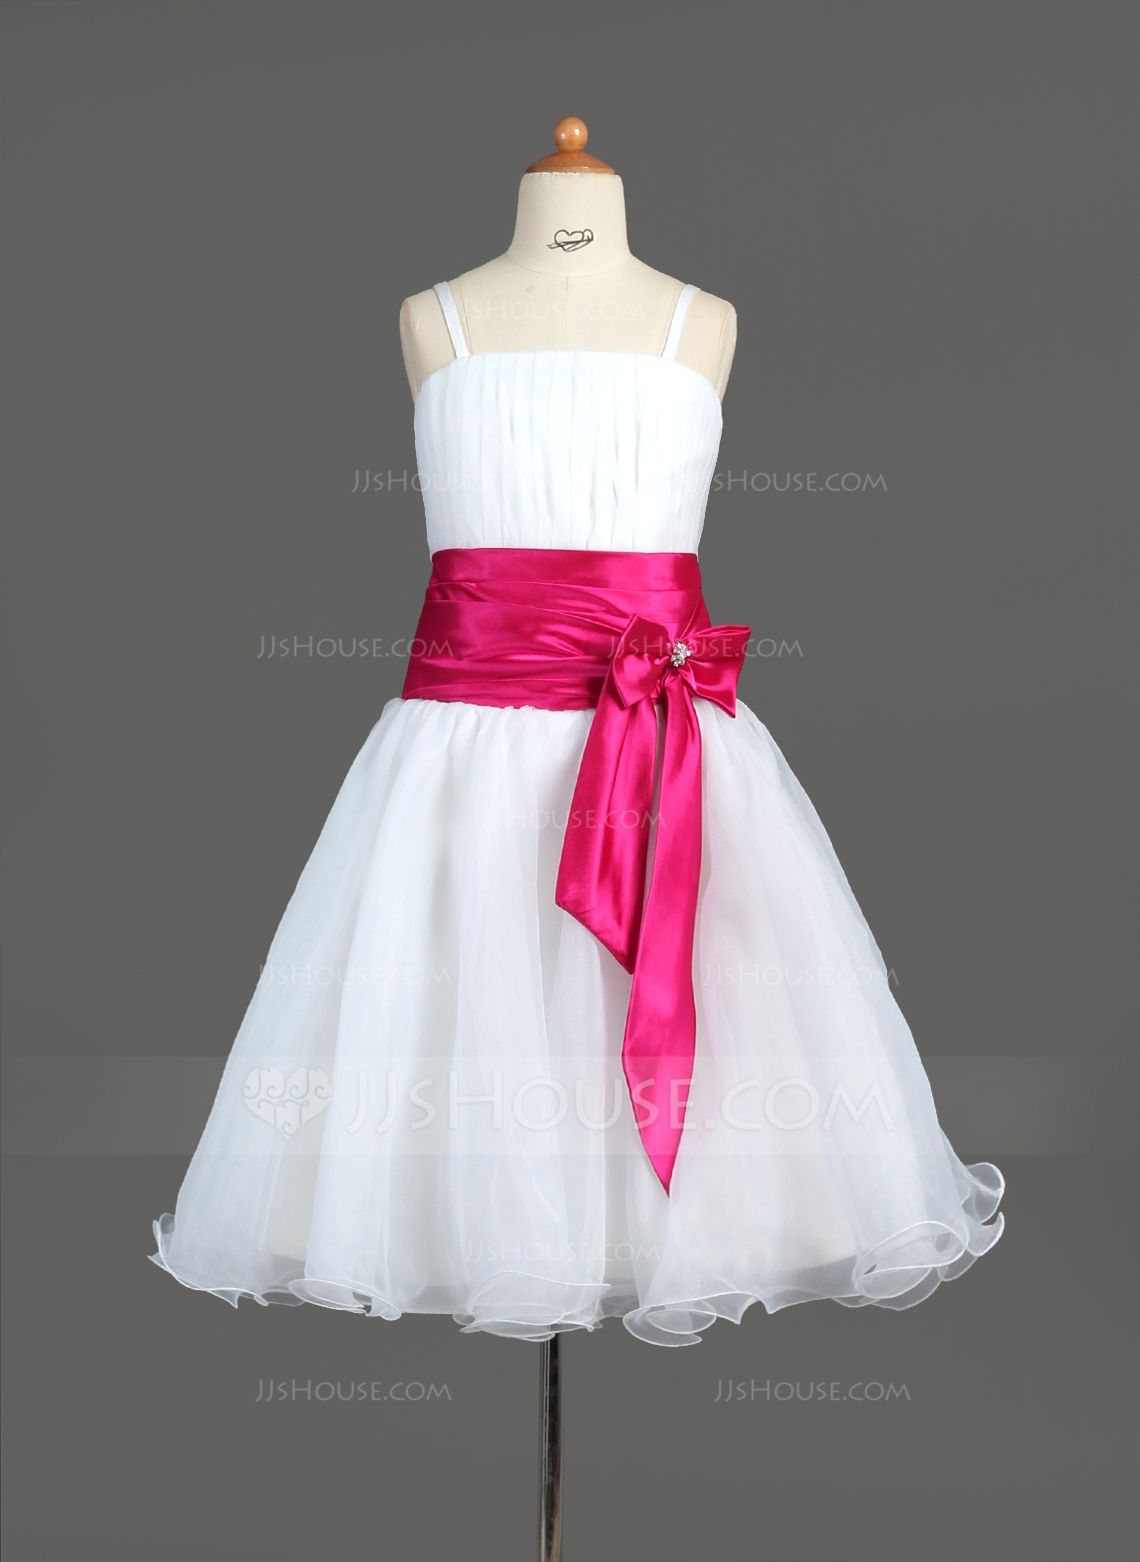 A-Line/Princess Knee-Length Ruffle Sash Beading Bow(s) Zipper Up Spaghetti Straps Sleeveless No White General Organza Flower Girl Dress